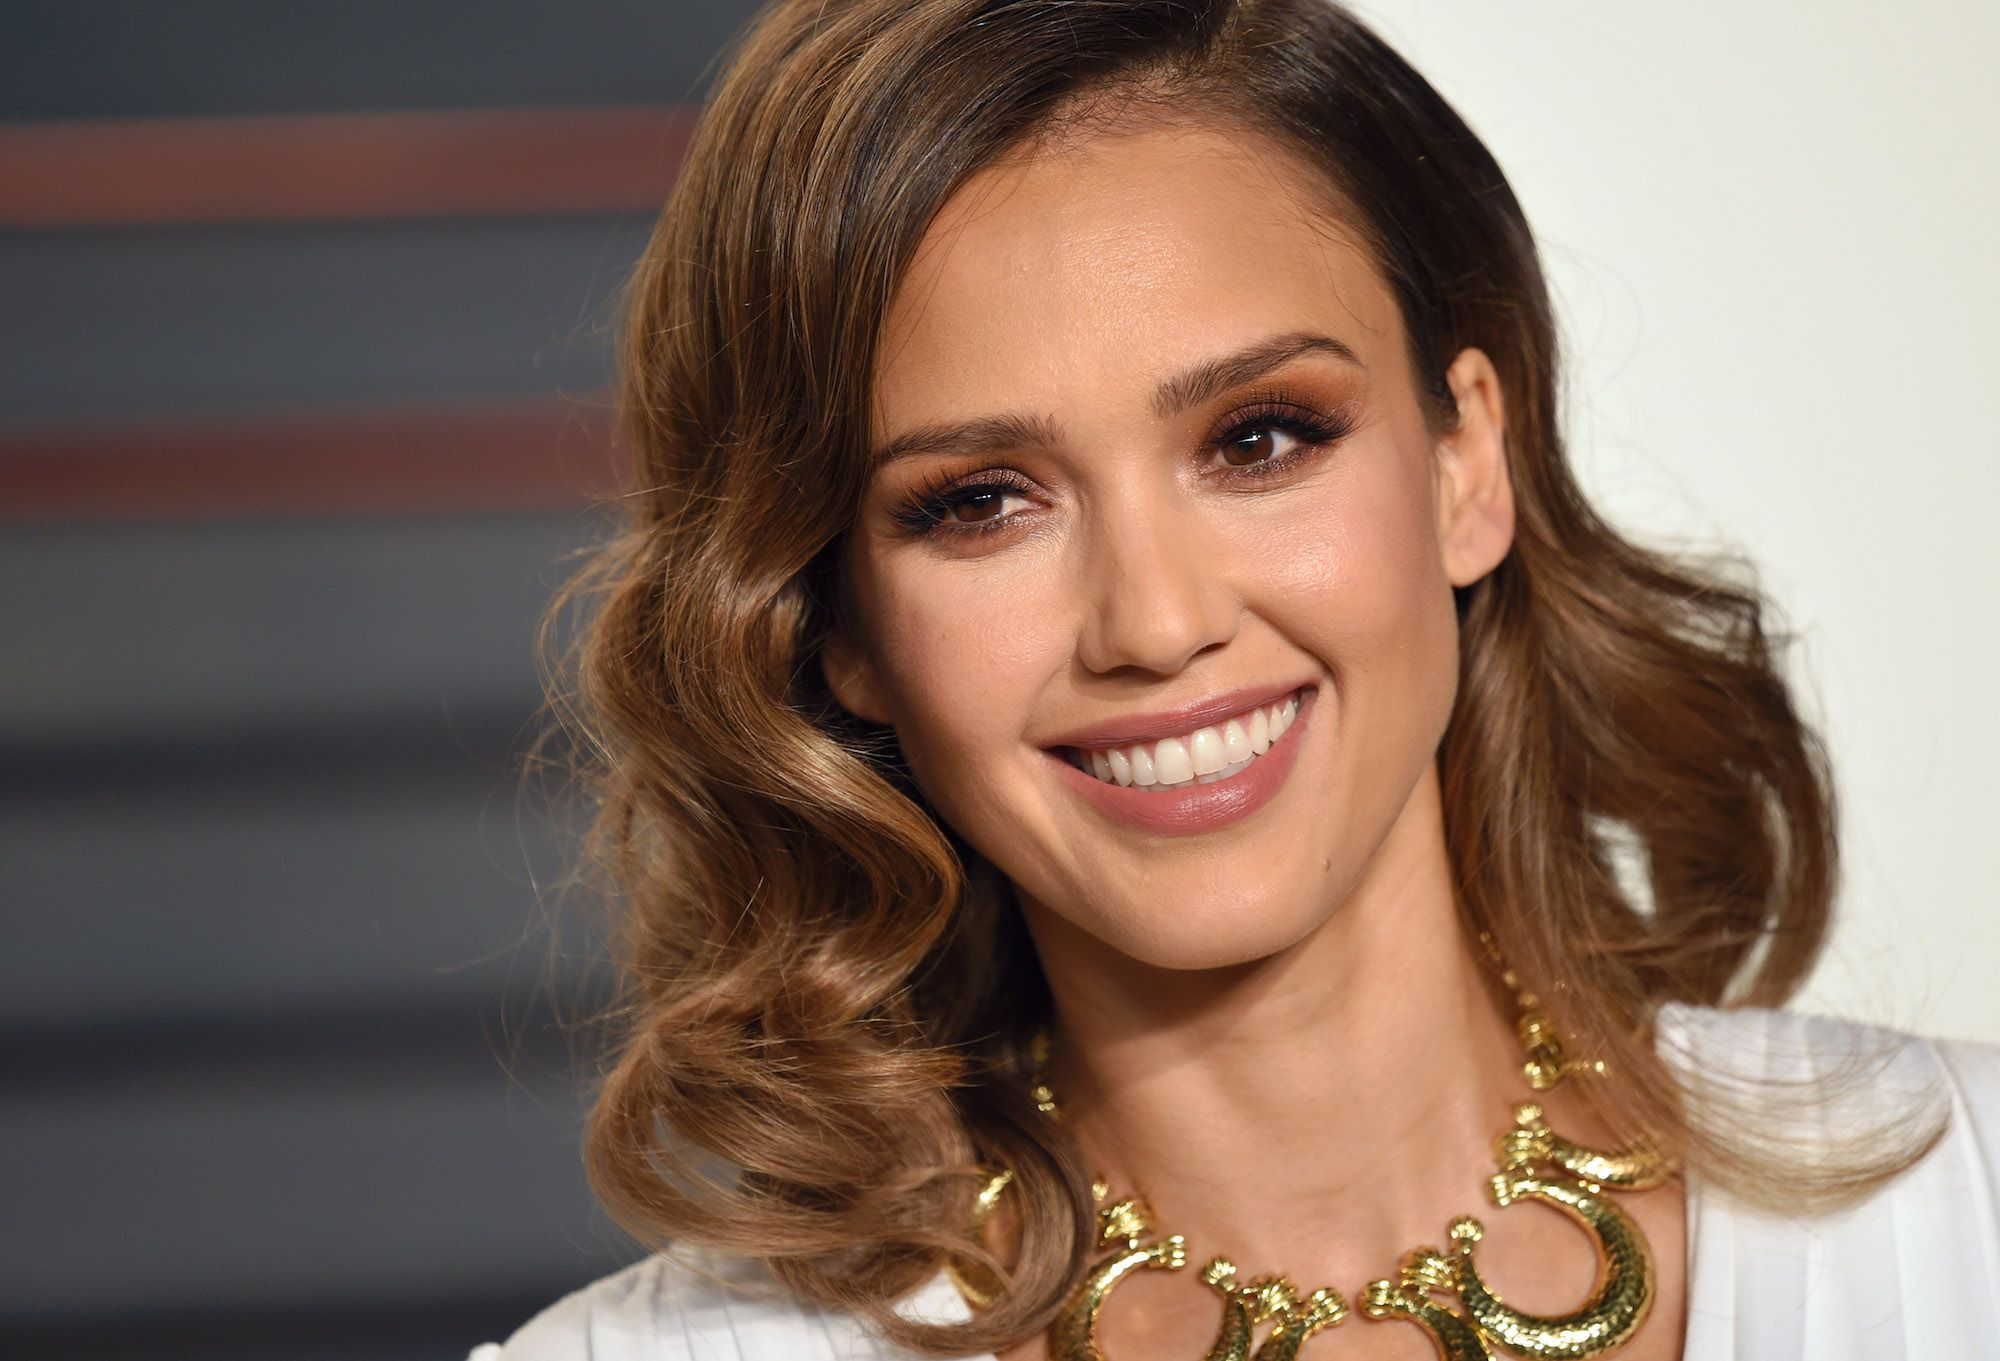 Loral Instant Highlights Gives You Jessica Alba Hair In Just 1 Hour